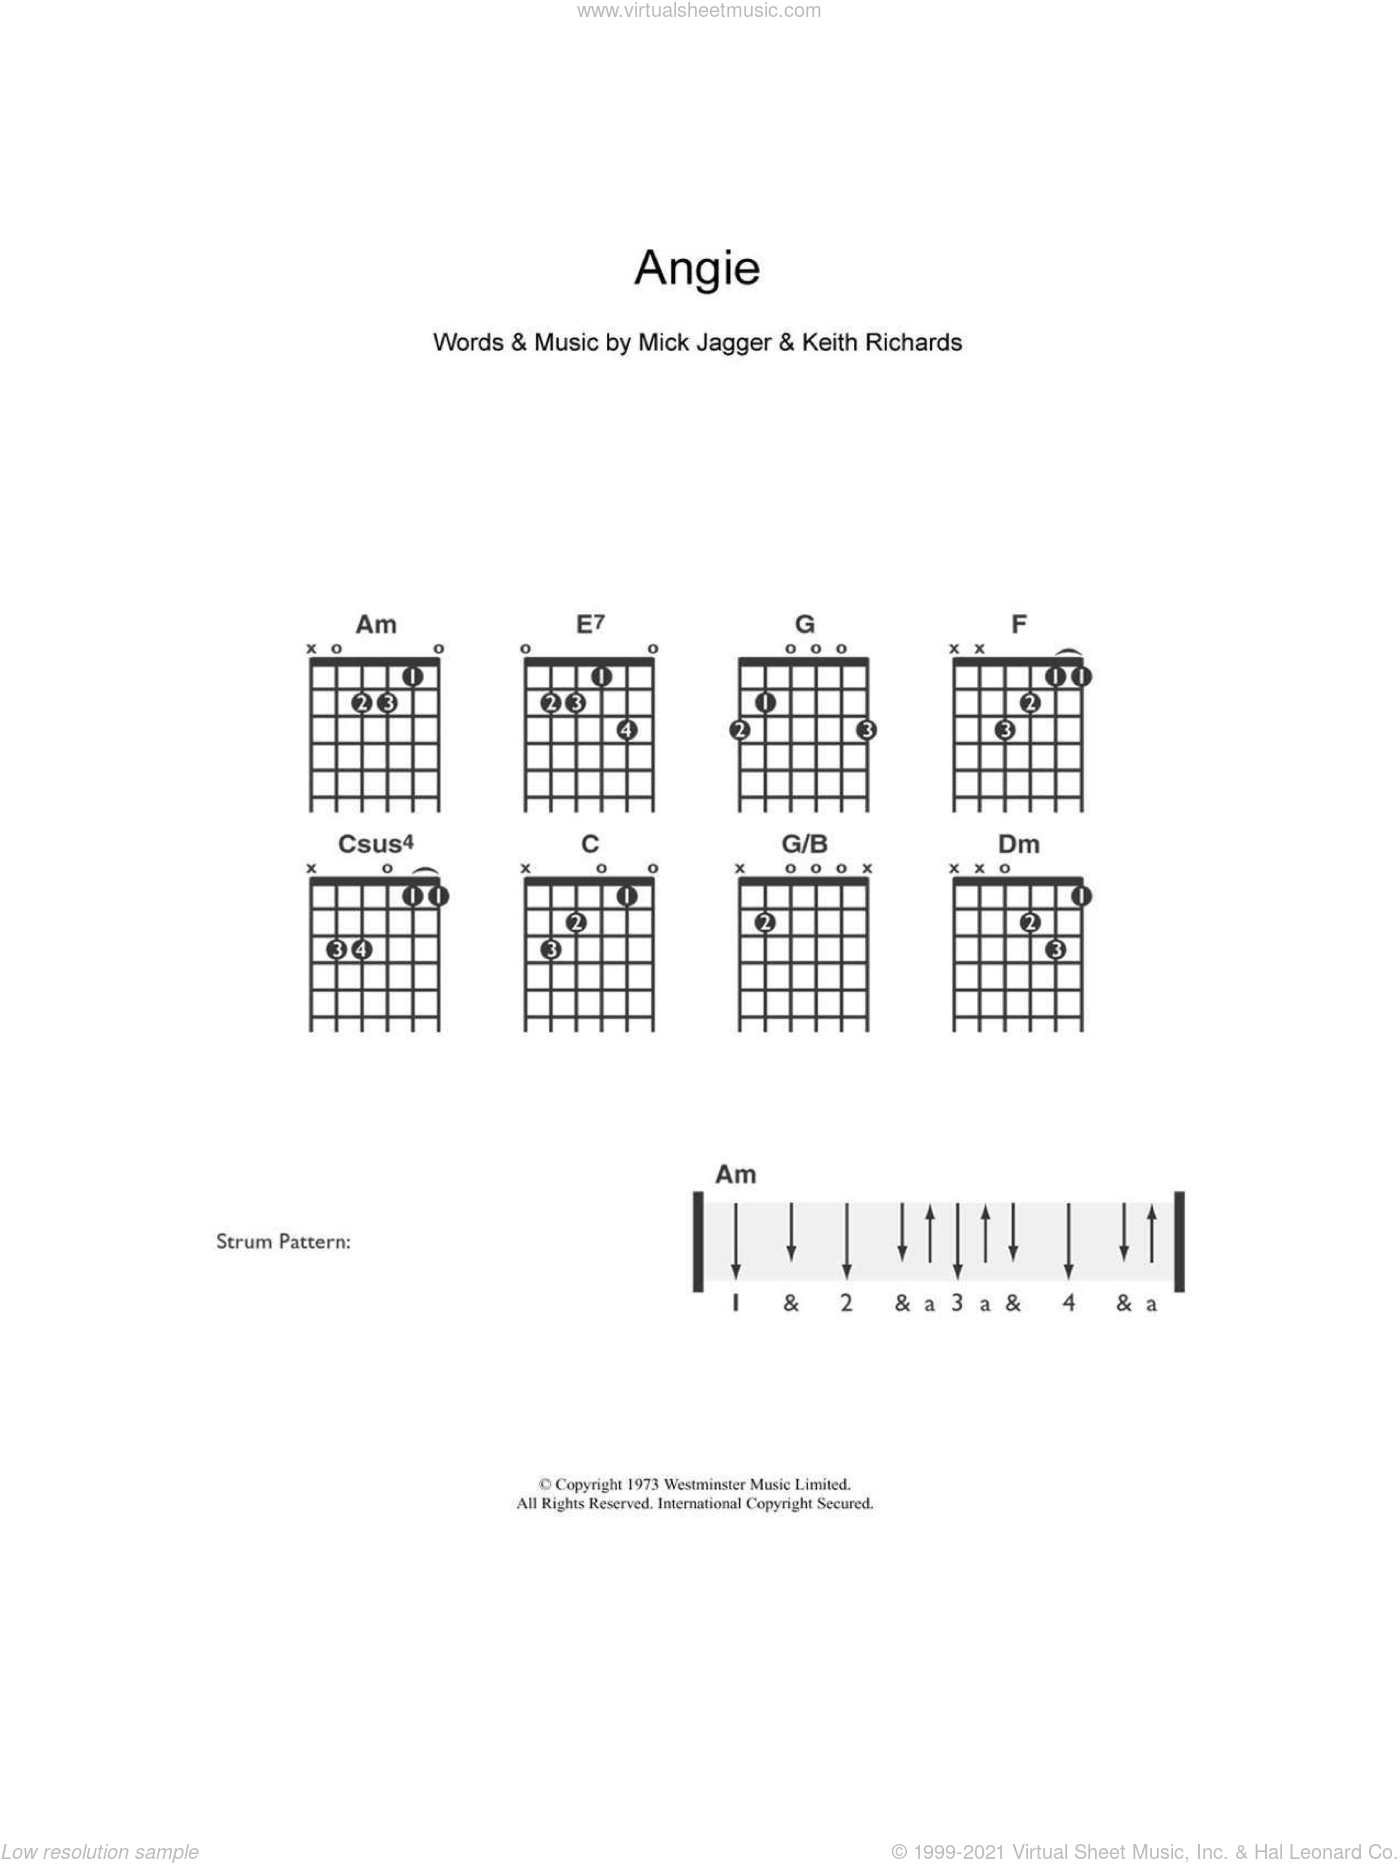 Angie sheet music for guitar solo (chords) by Mick Jagger